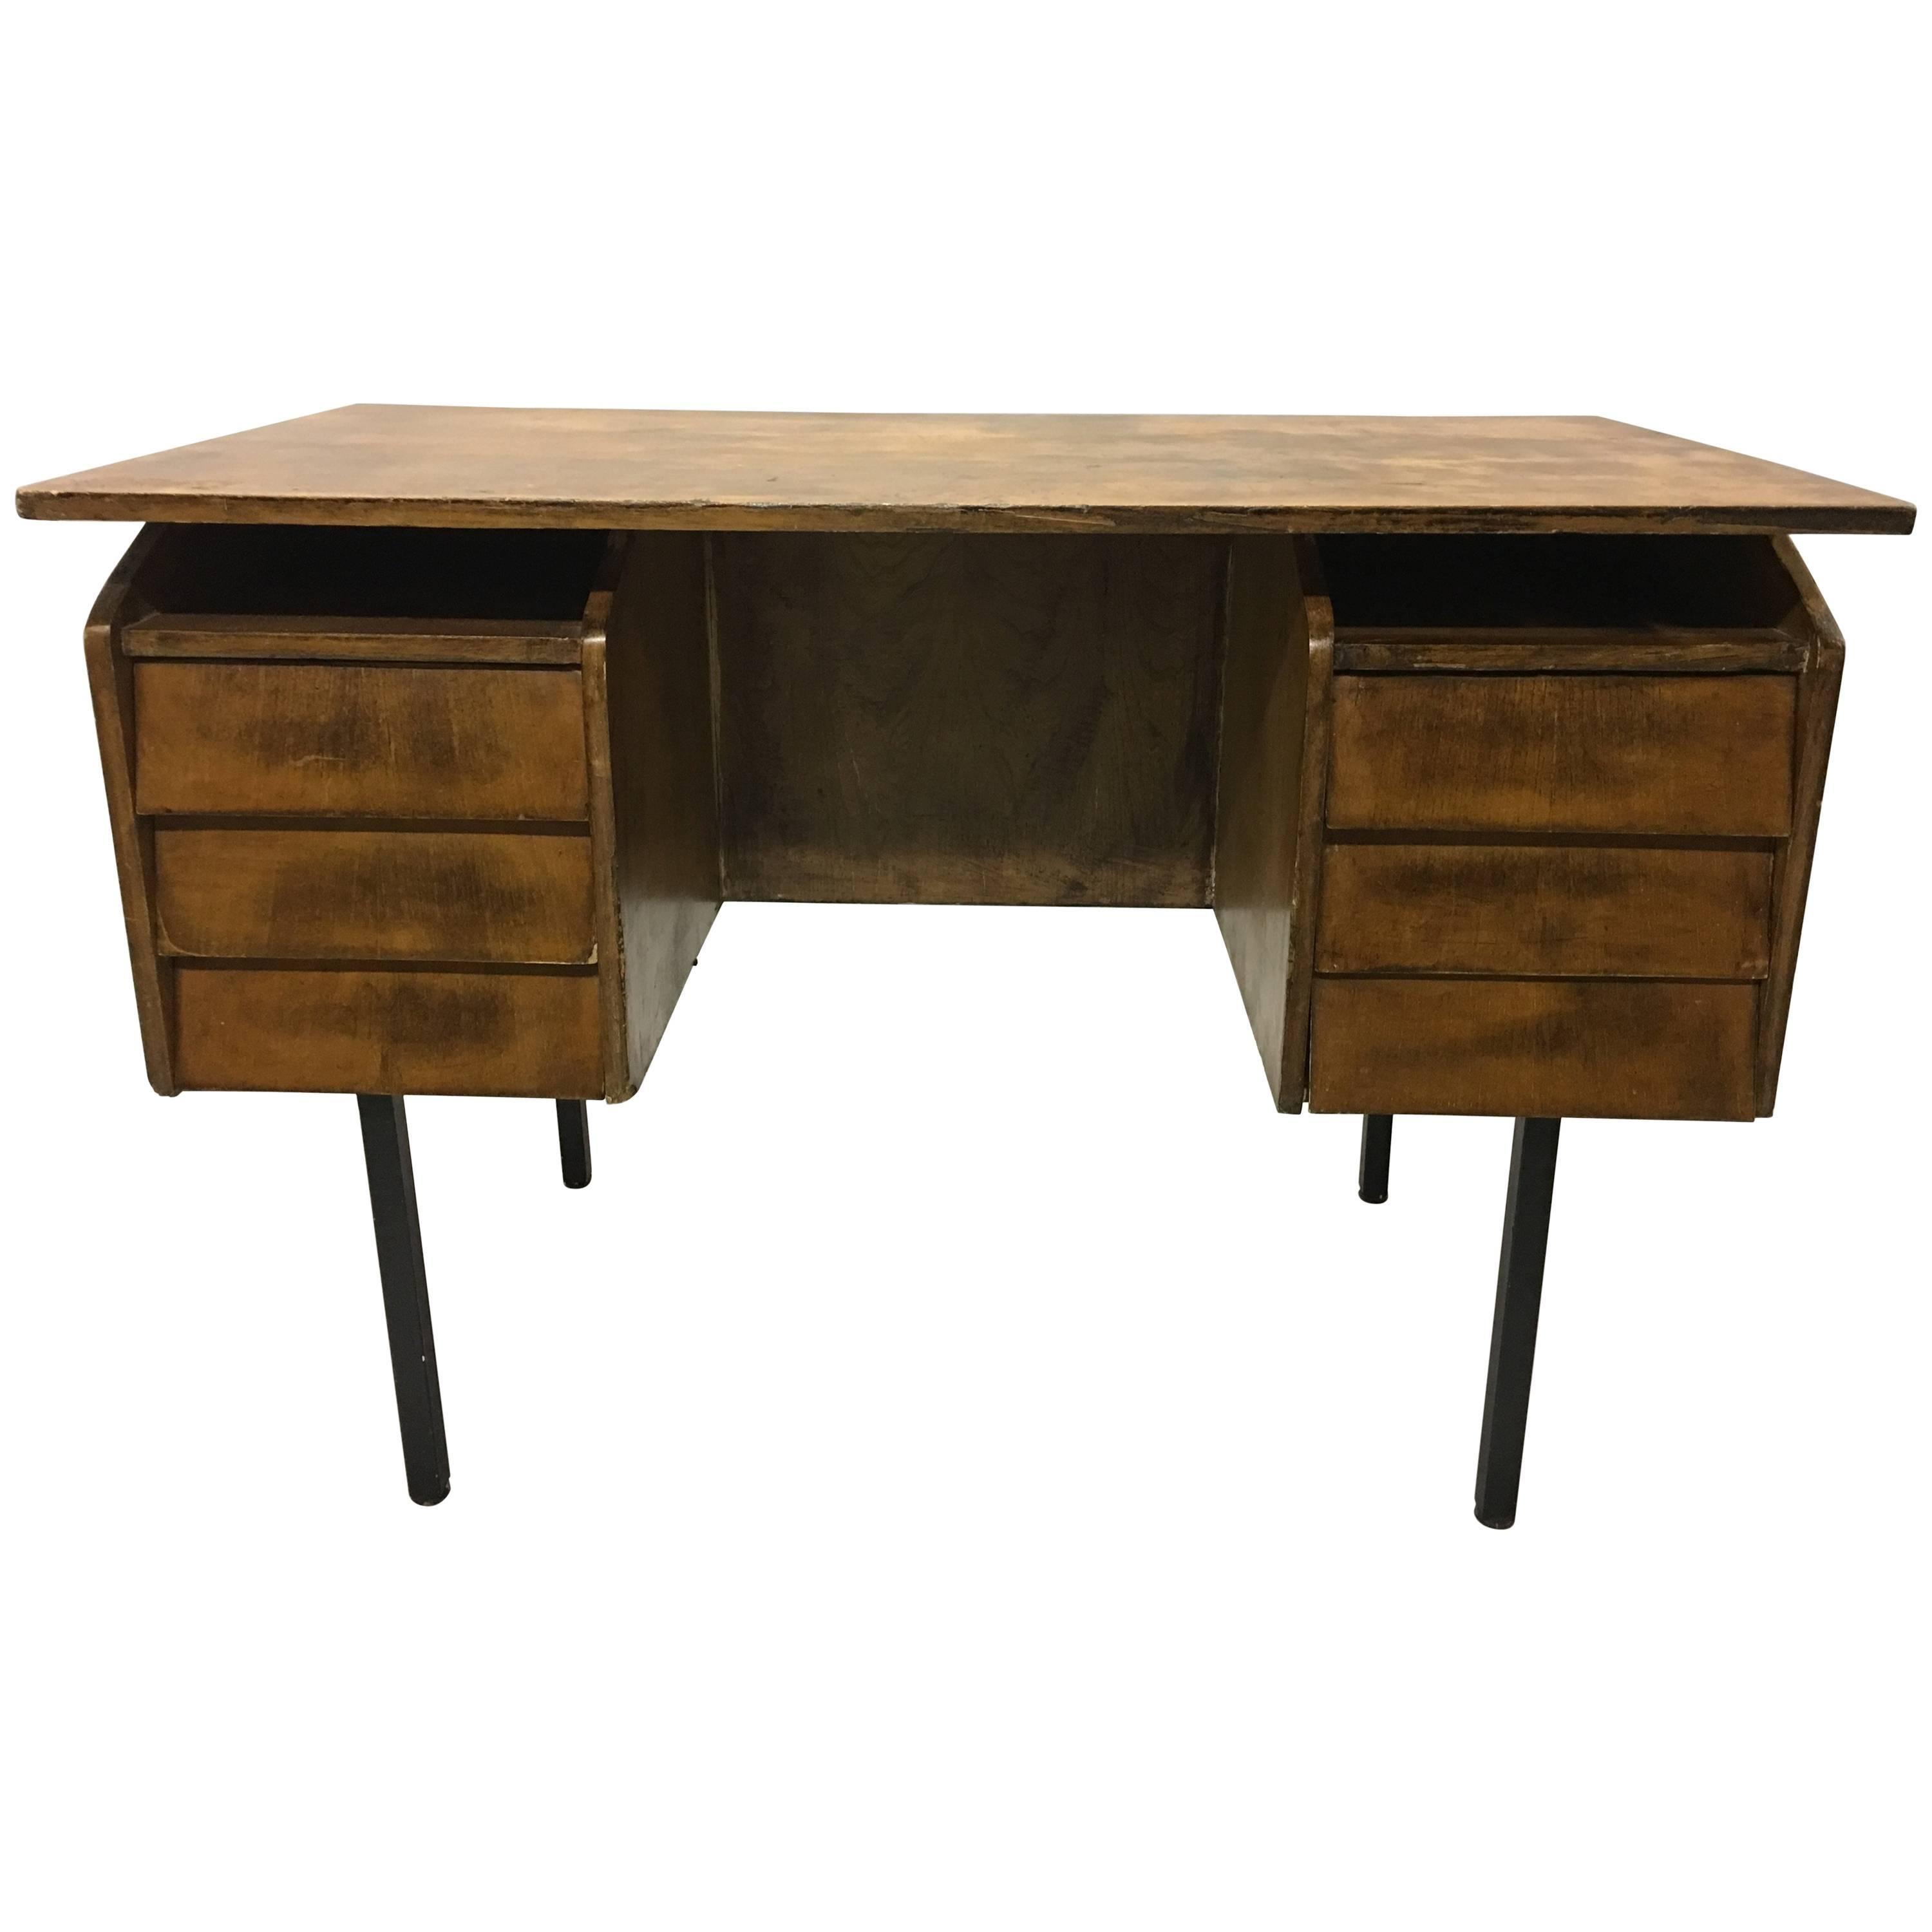 German Mid Century Modern Cantilevered Wood And Metal Desk By Voss, 1950